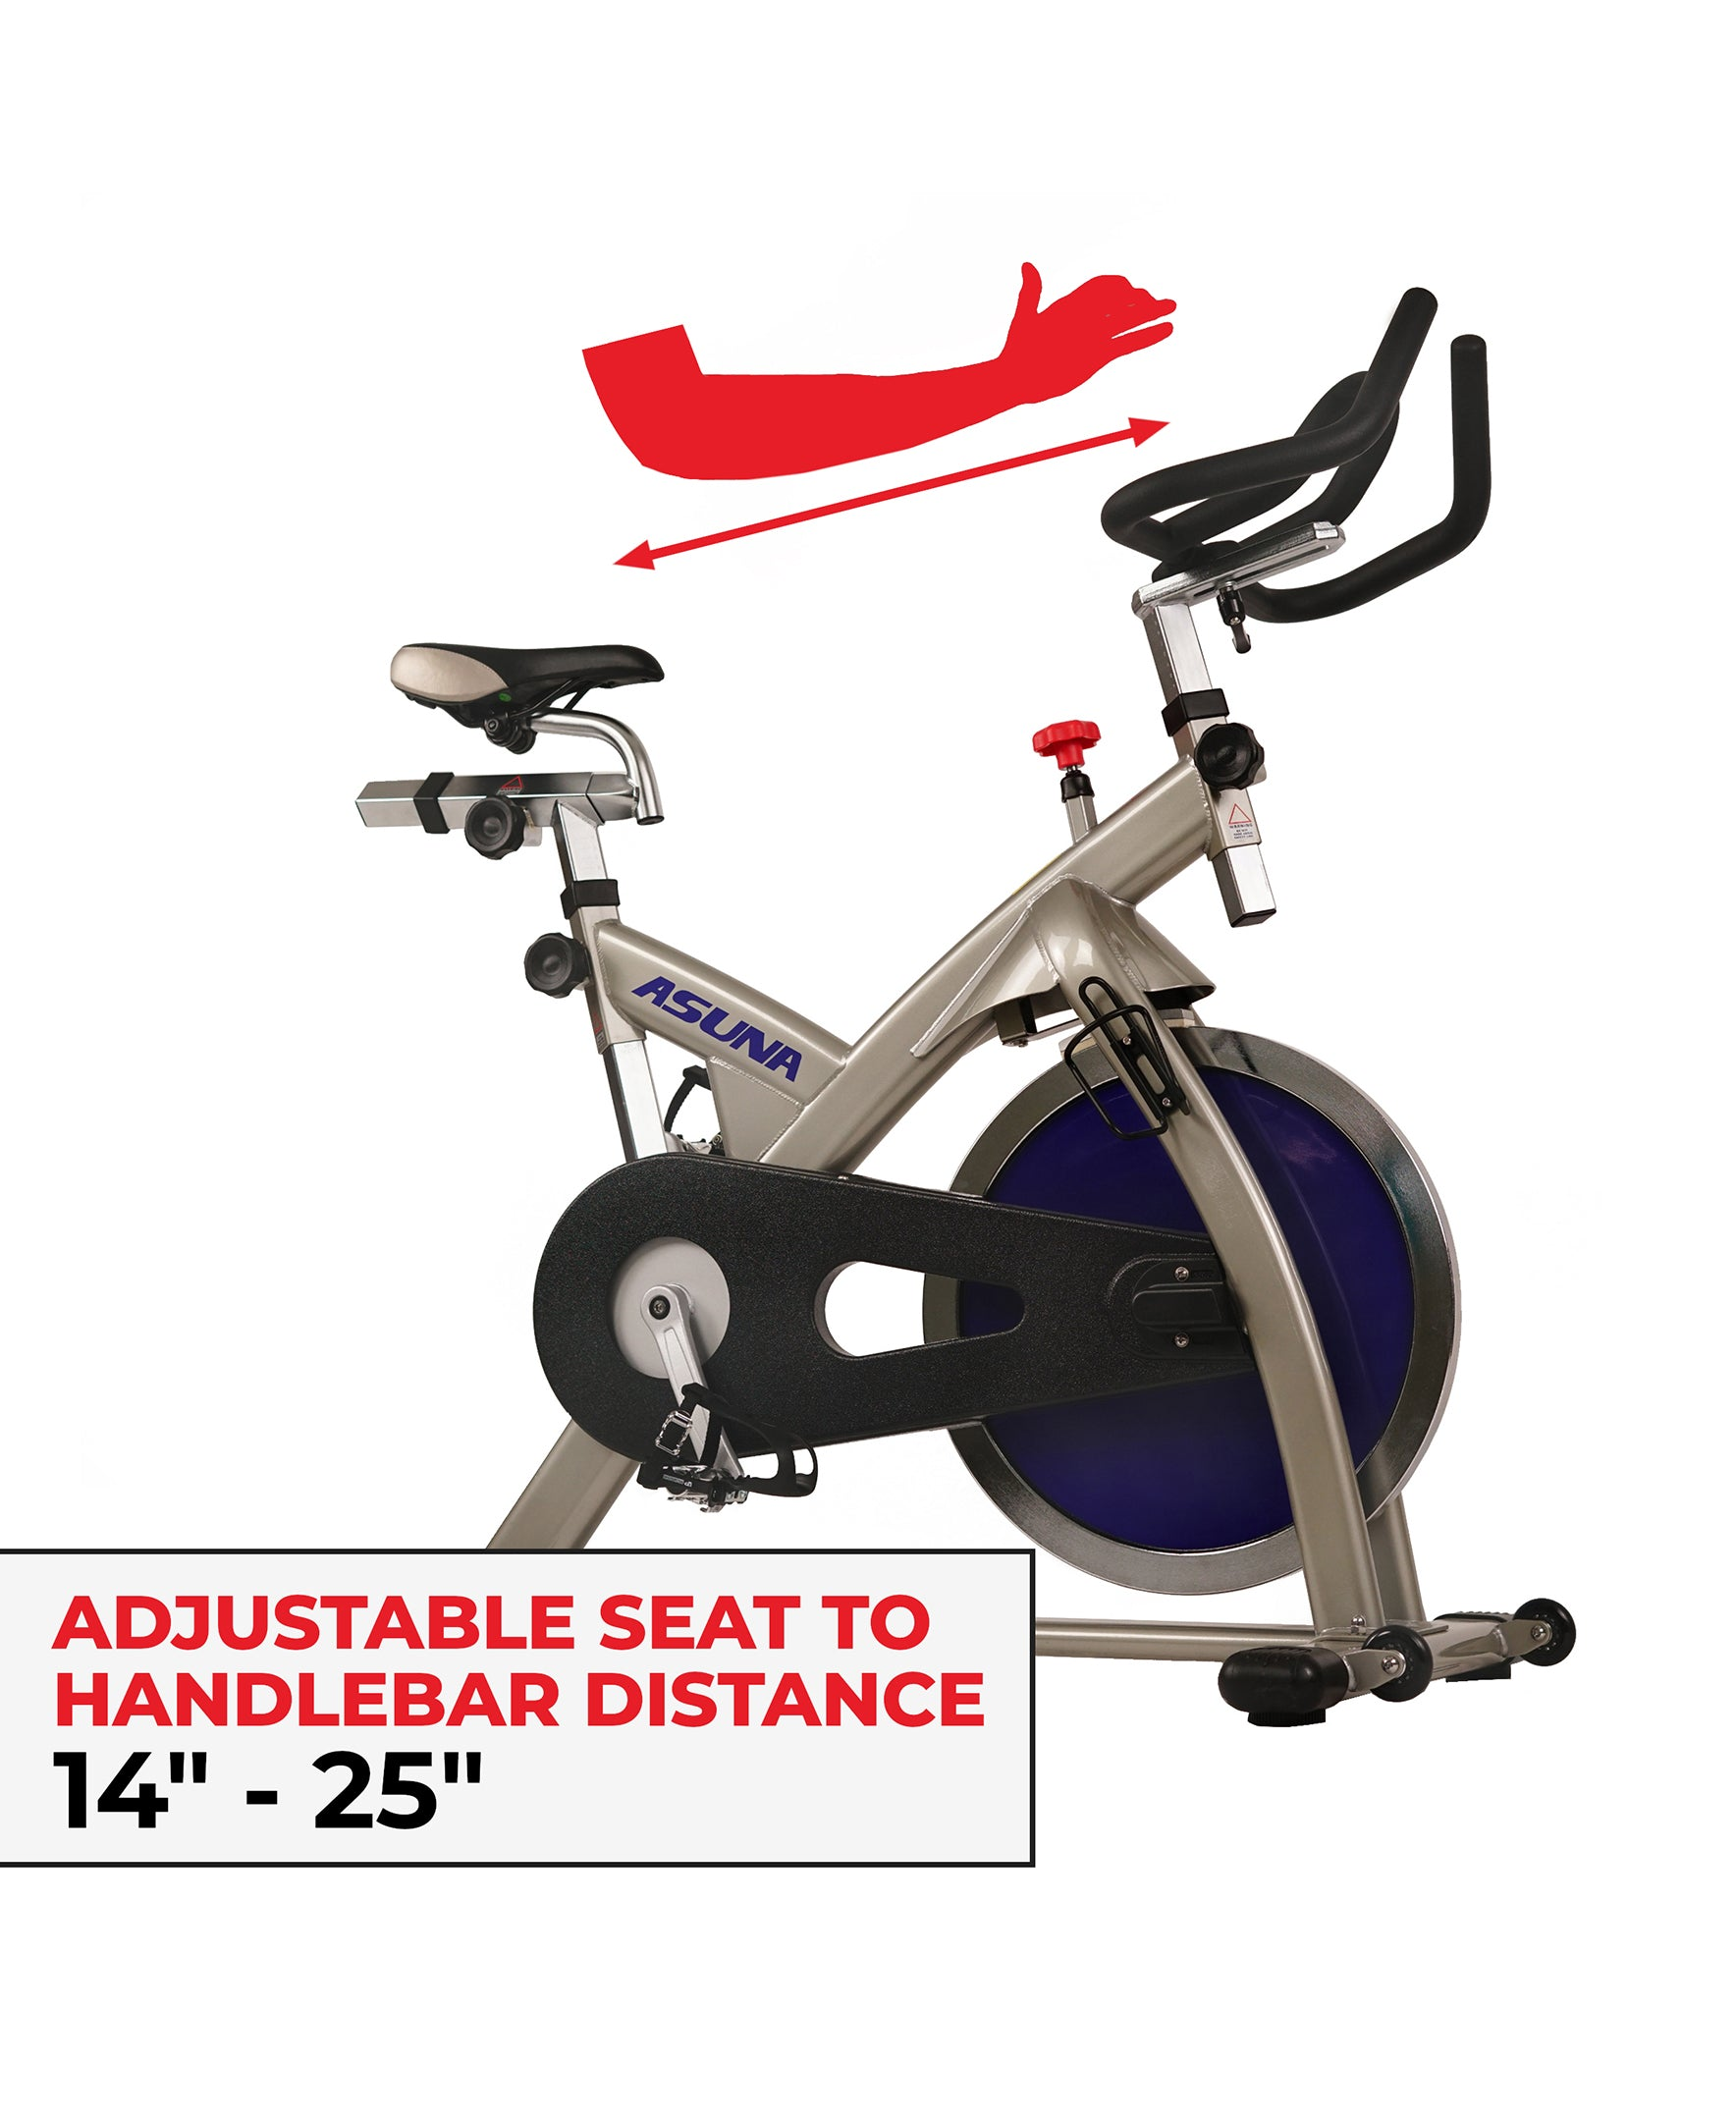 sunny-health-fitness-bikes-premium-chain-drive-commercial-indoor-cycling-trainer-4100-sizing